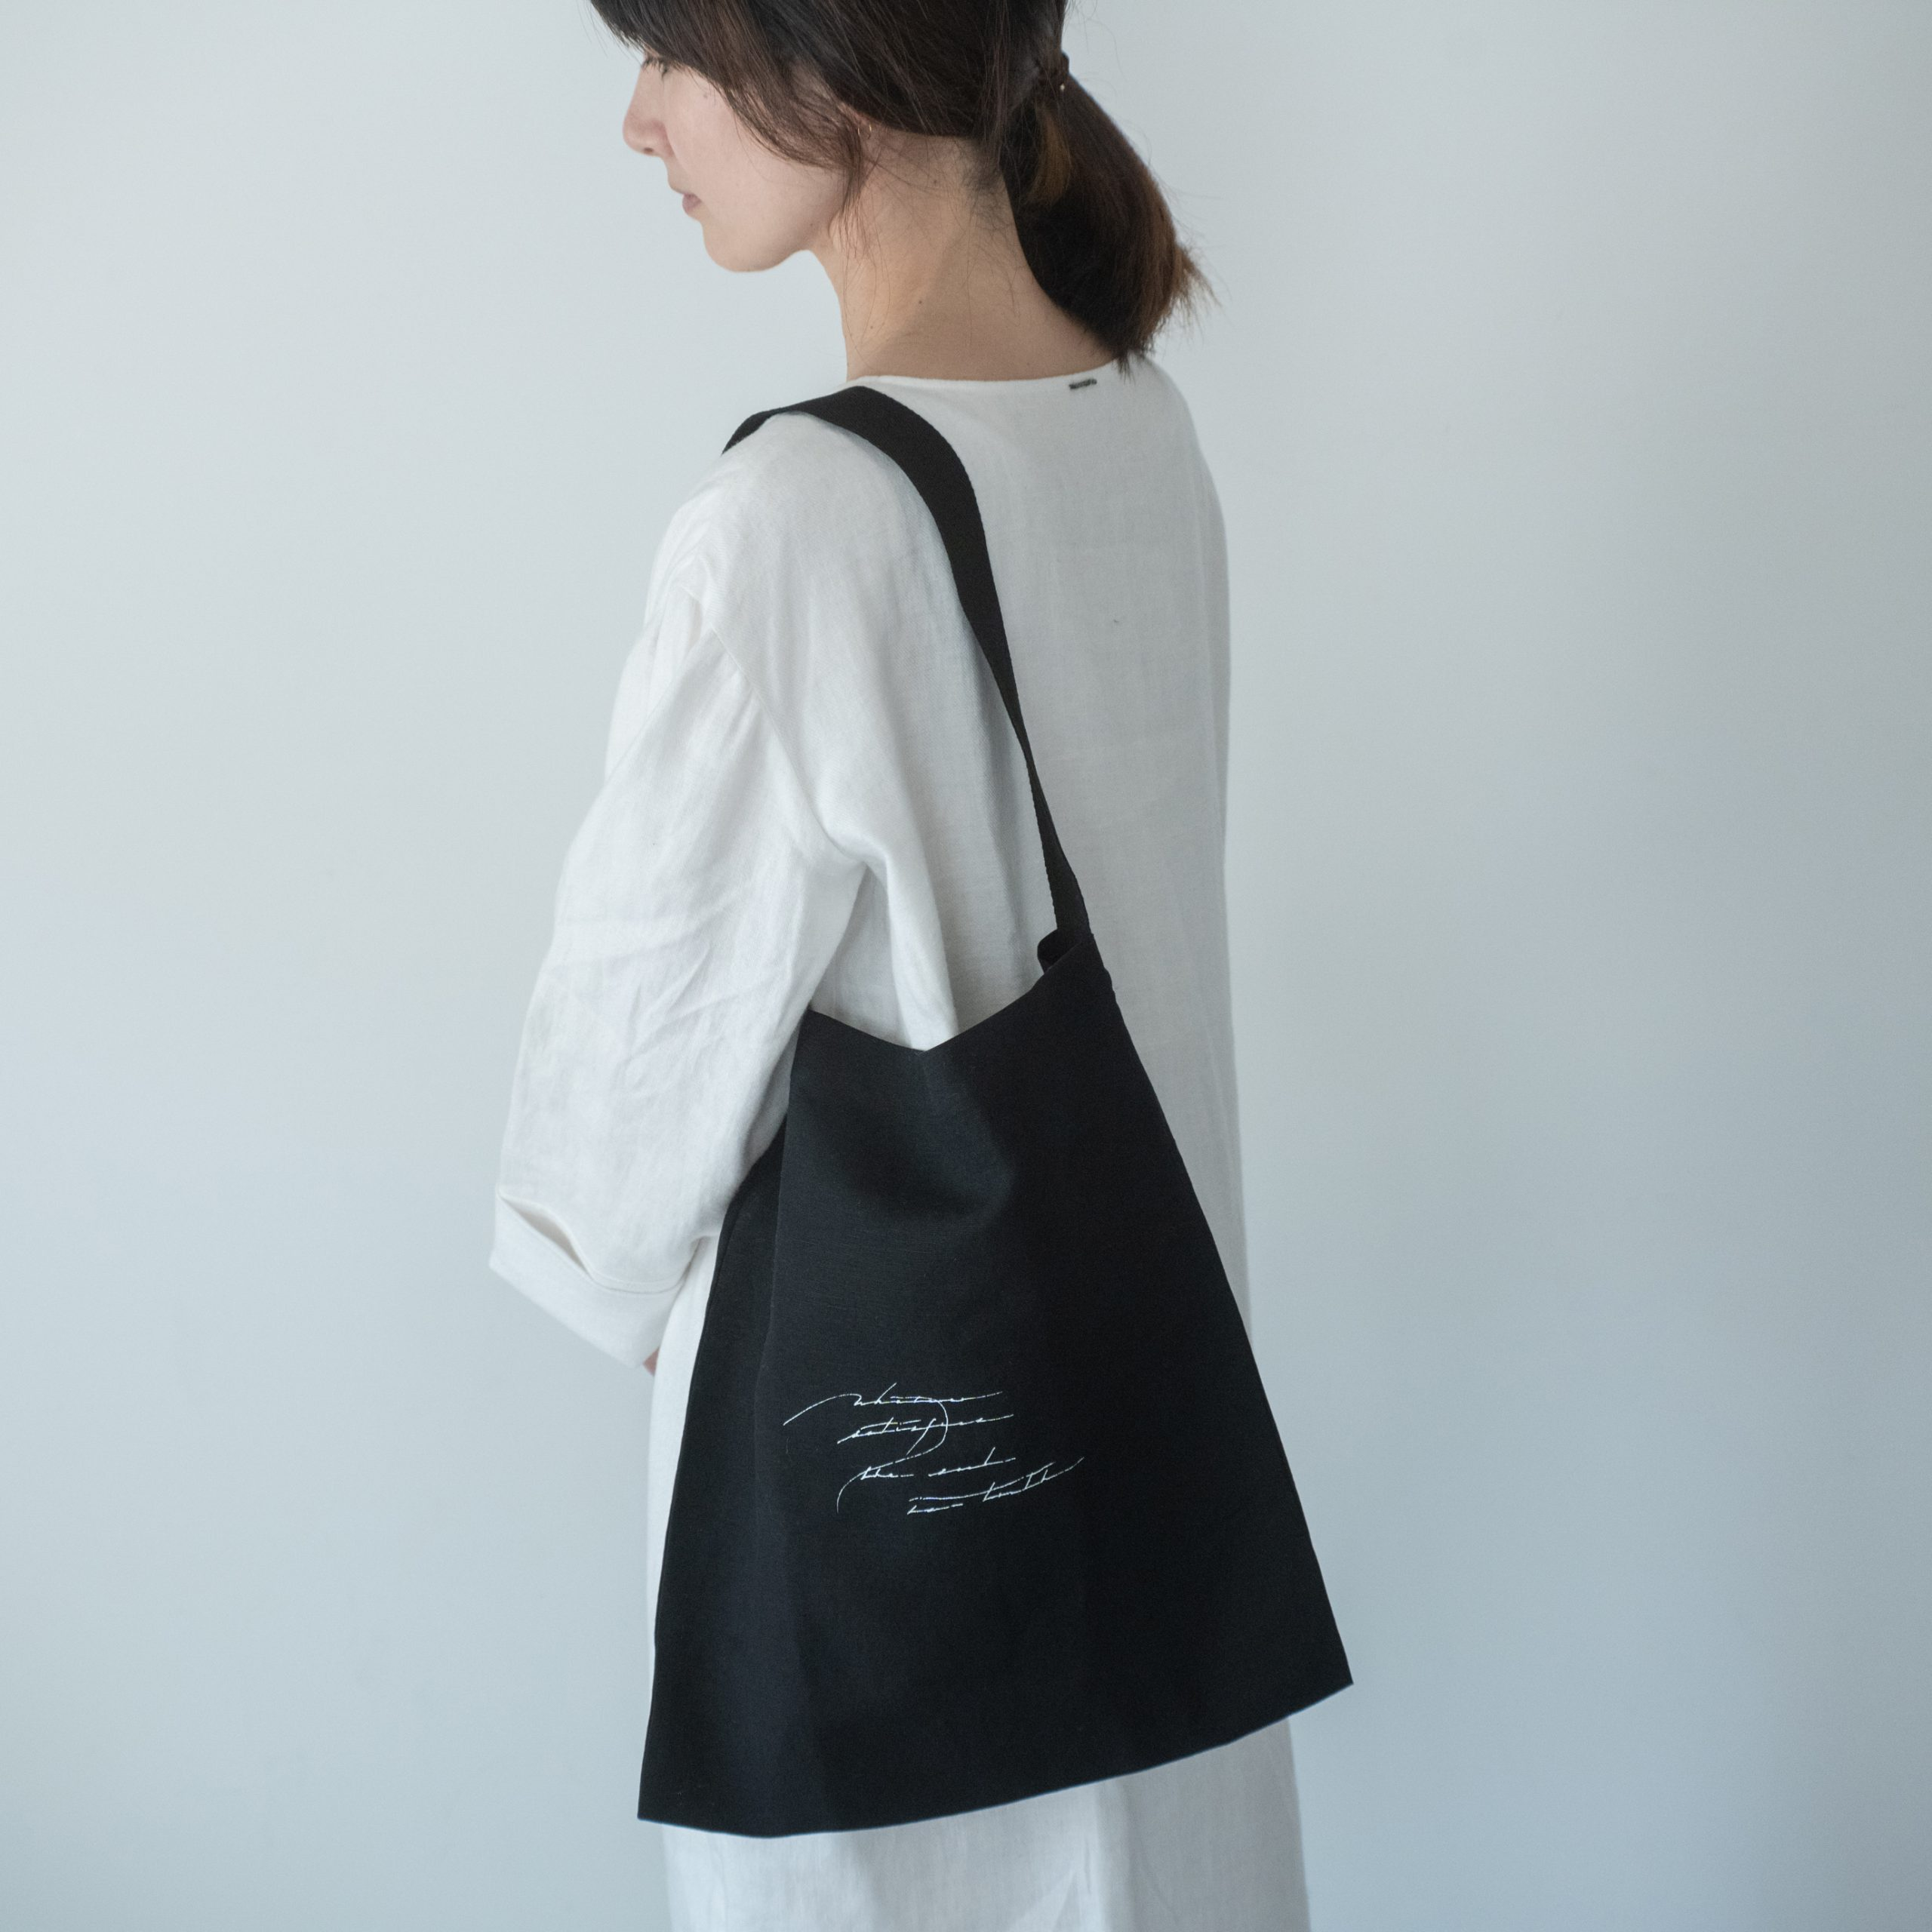 letter tote bag(black)・中